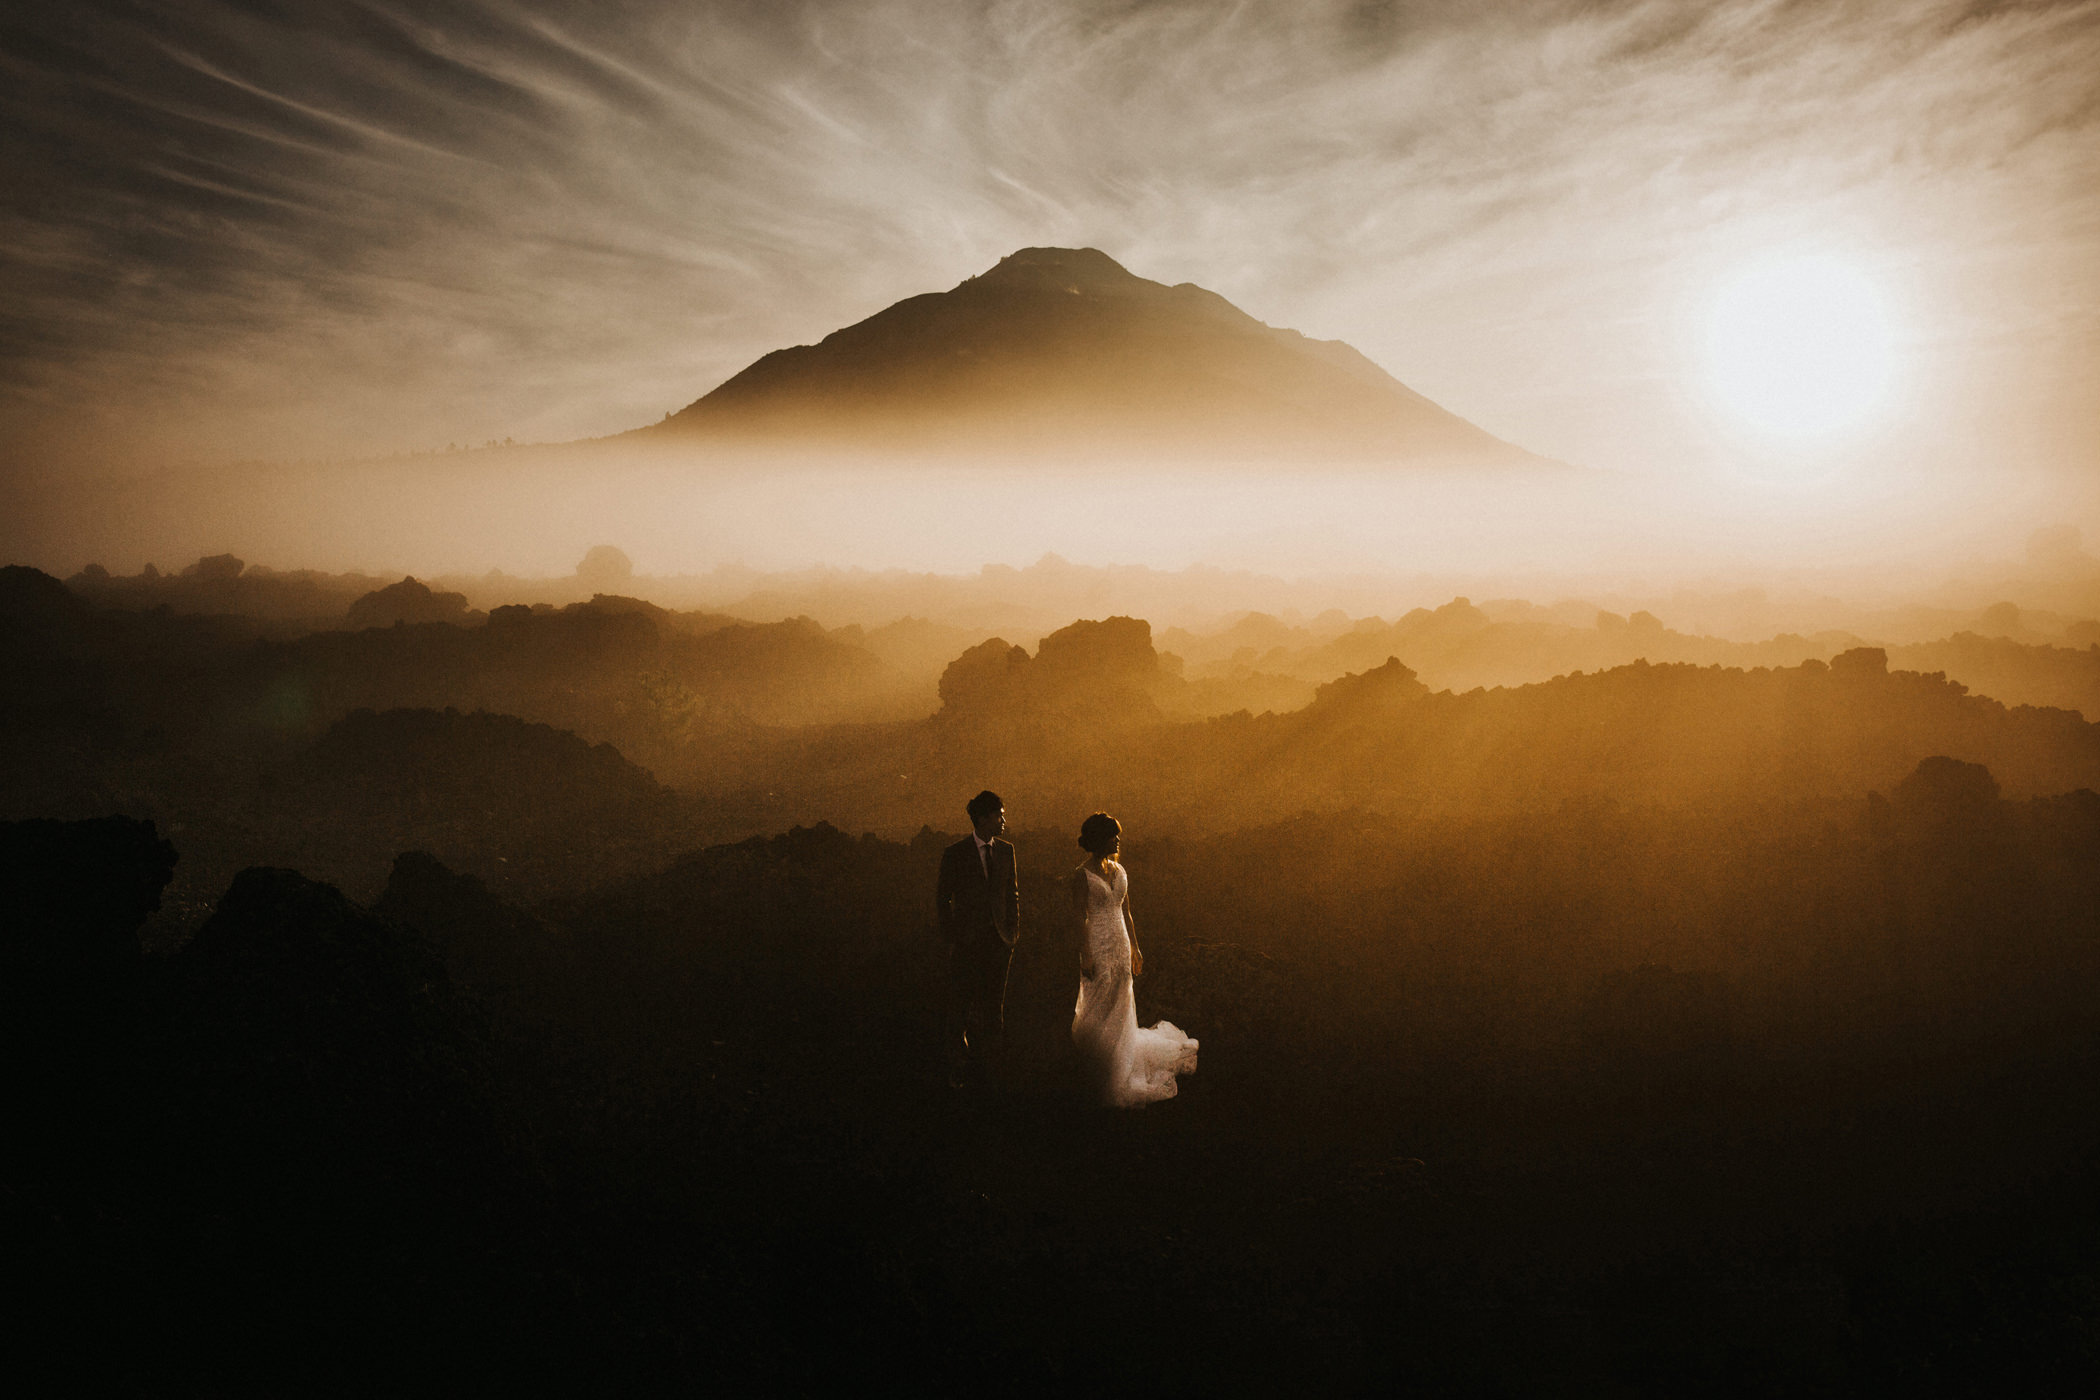 iluminen bali wedding photographer destination photography visual storyteller